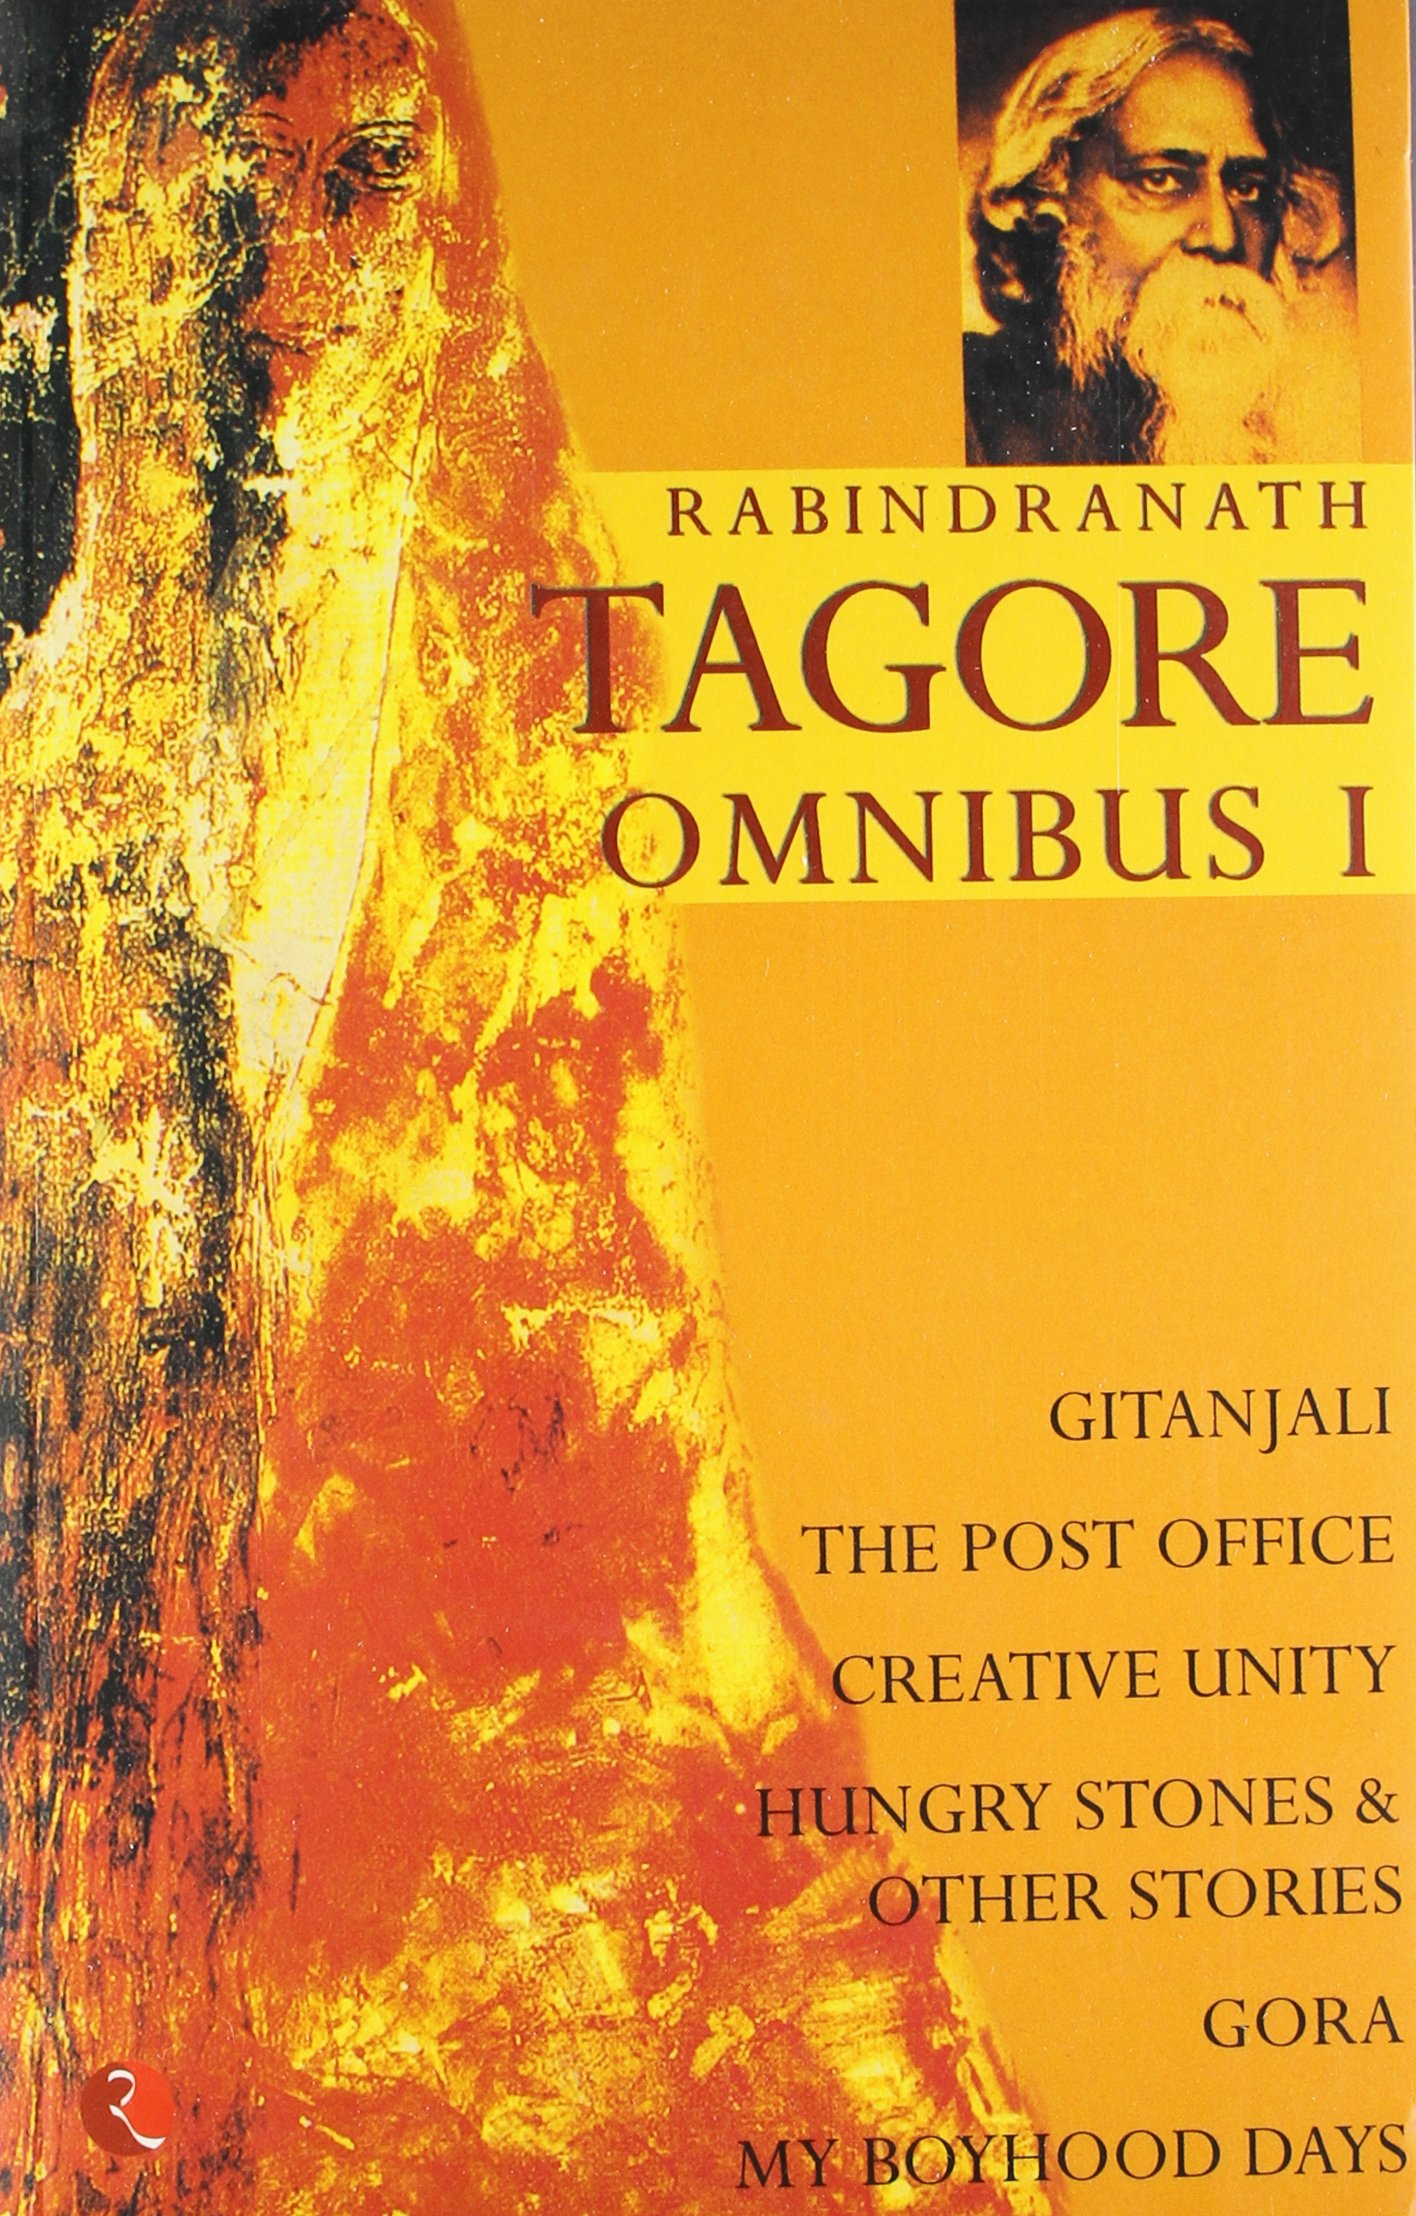 buy rabindranath tagore omnibus vol 1 book online at low prices buy rabindranath tagore omnibus vol 1 book online at low prices in rabindranath tagore omnibus vol 1 reviews ratings in